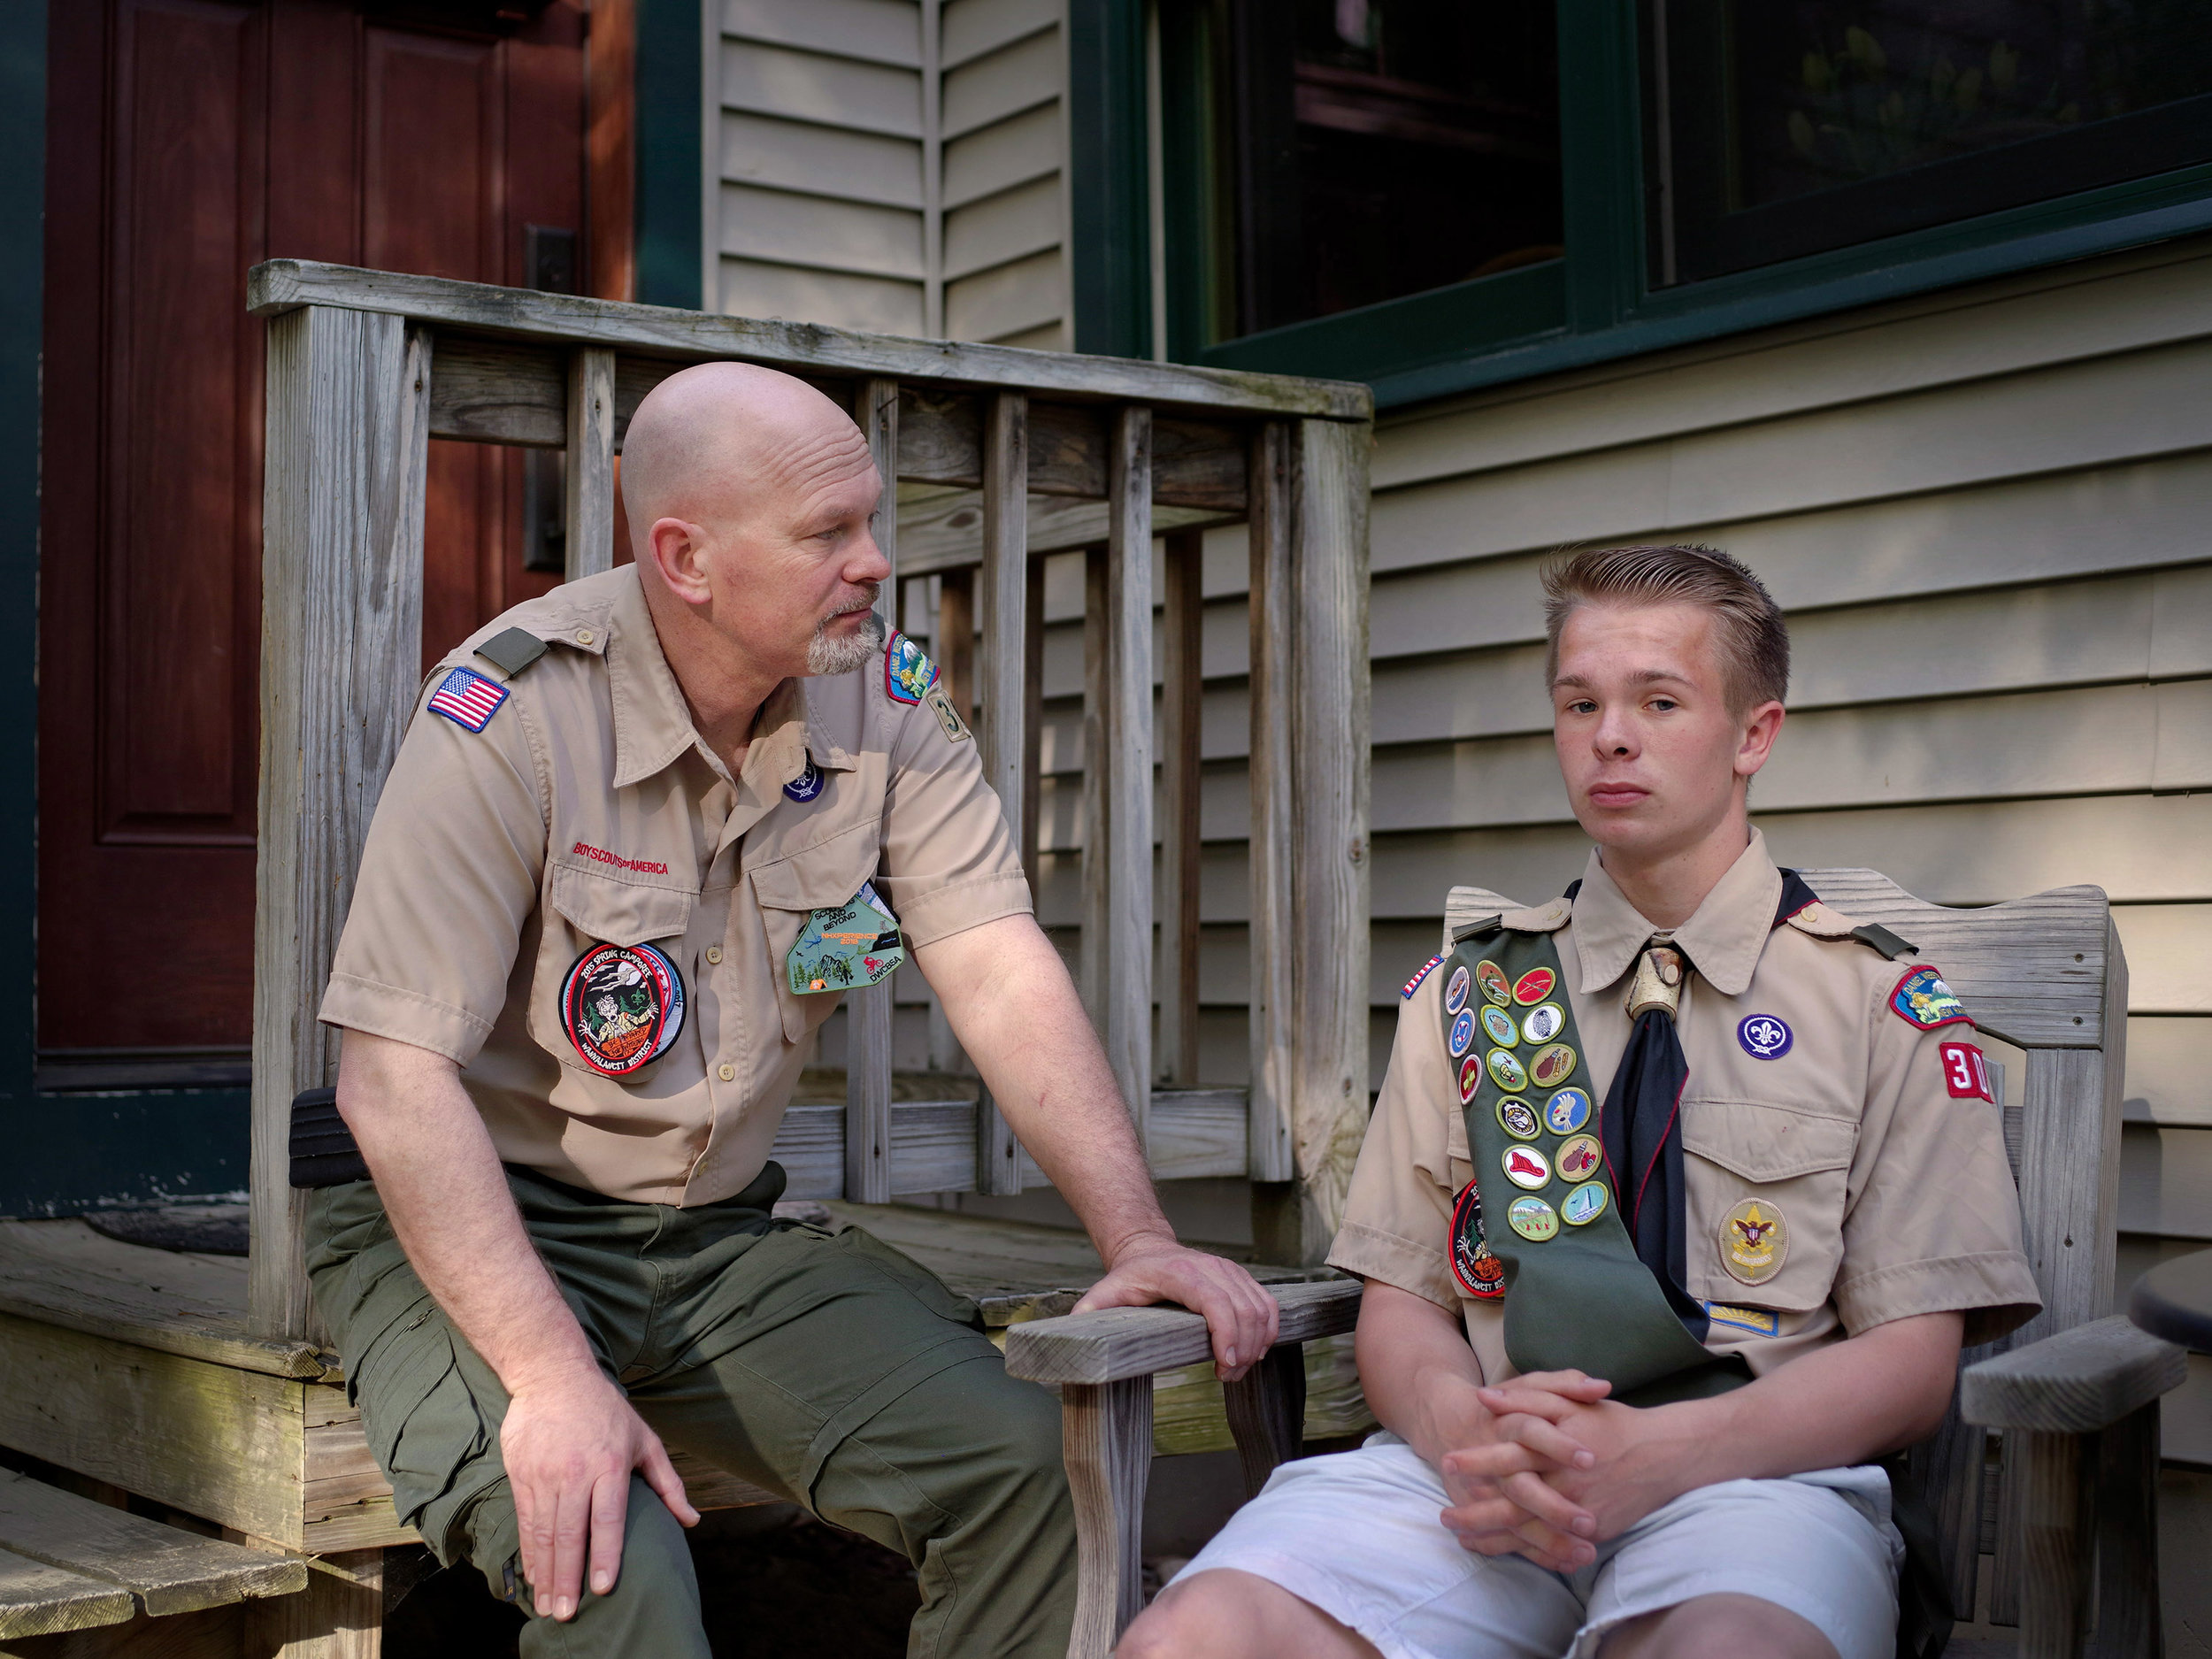 Rich and EJ in Boy Scouts uniforms, 2018